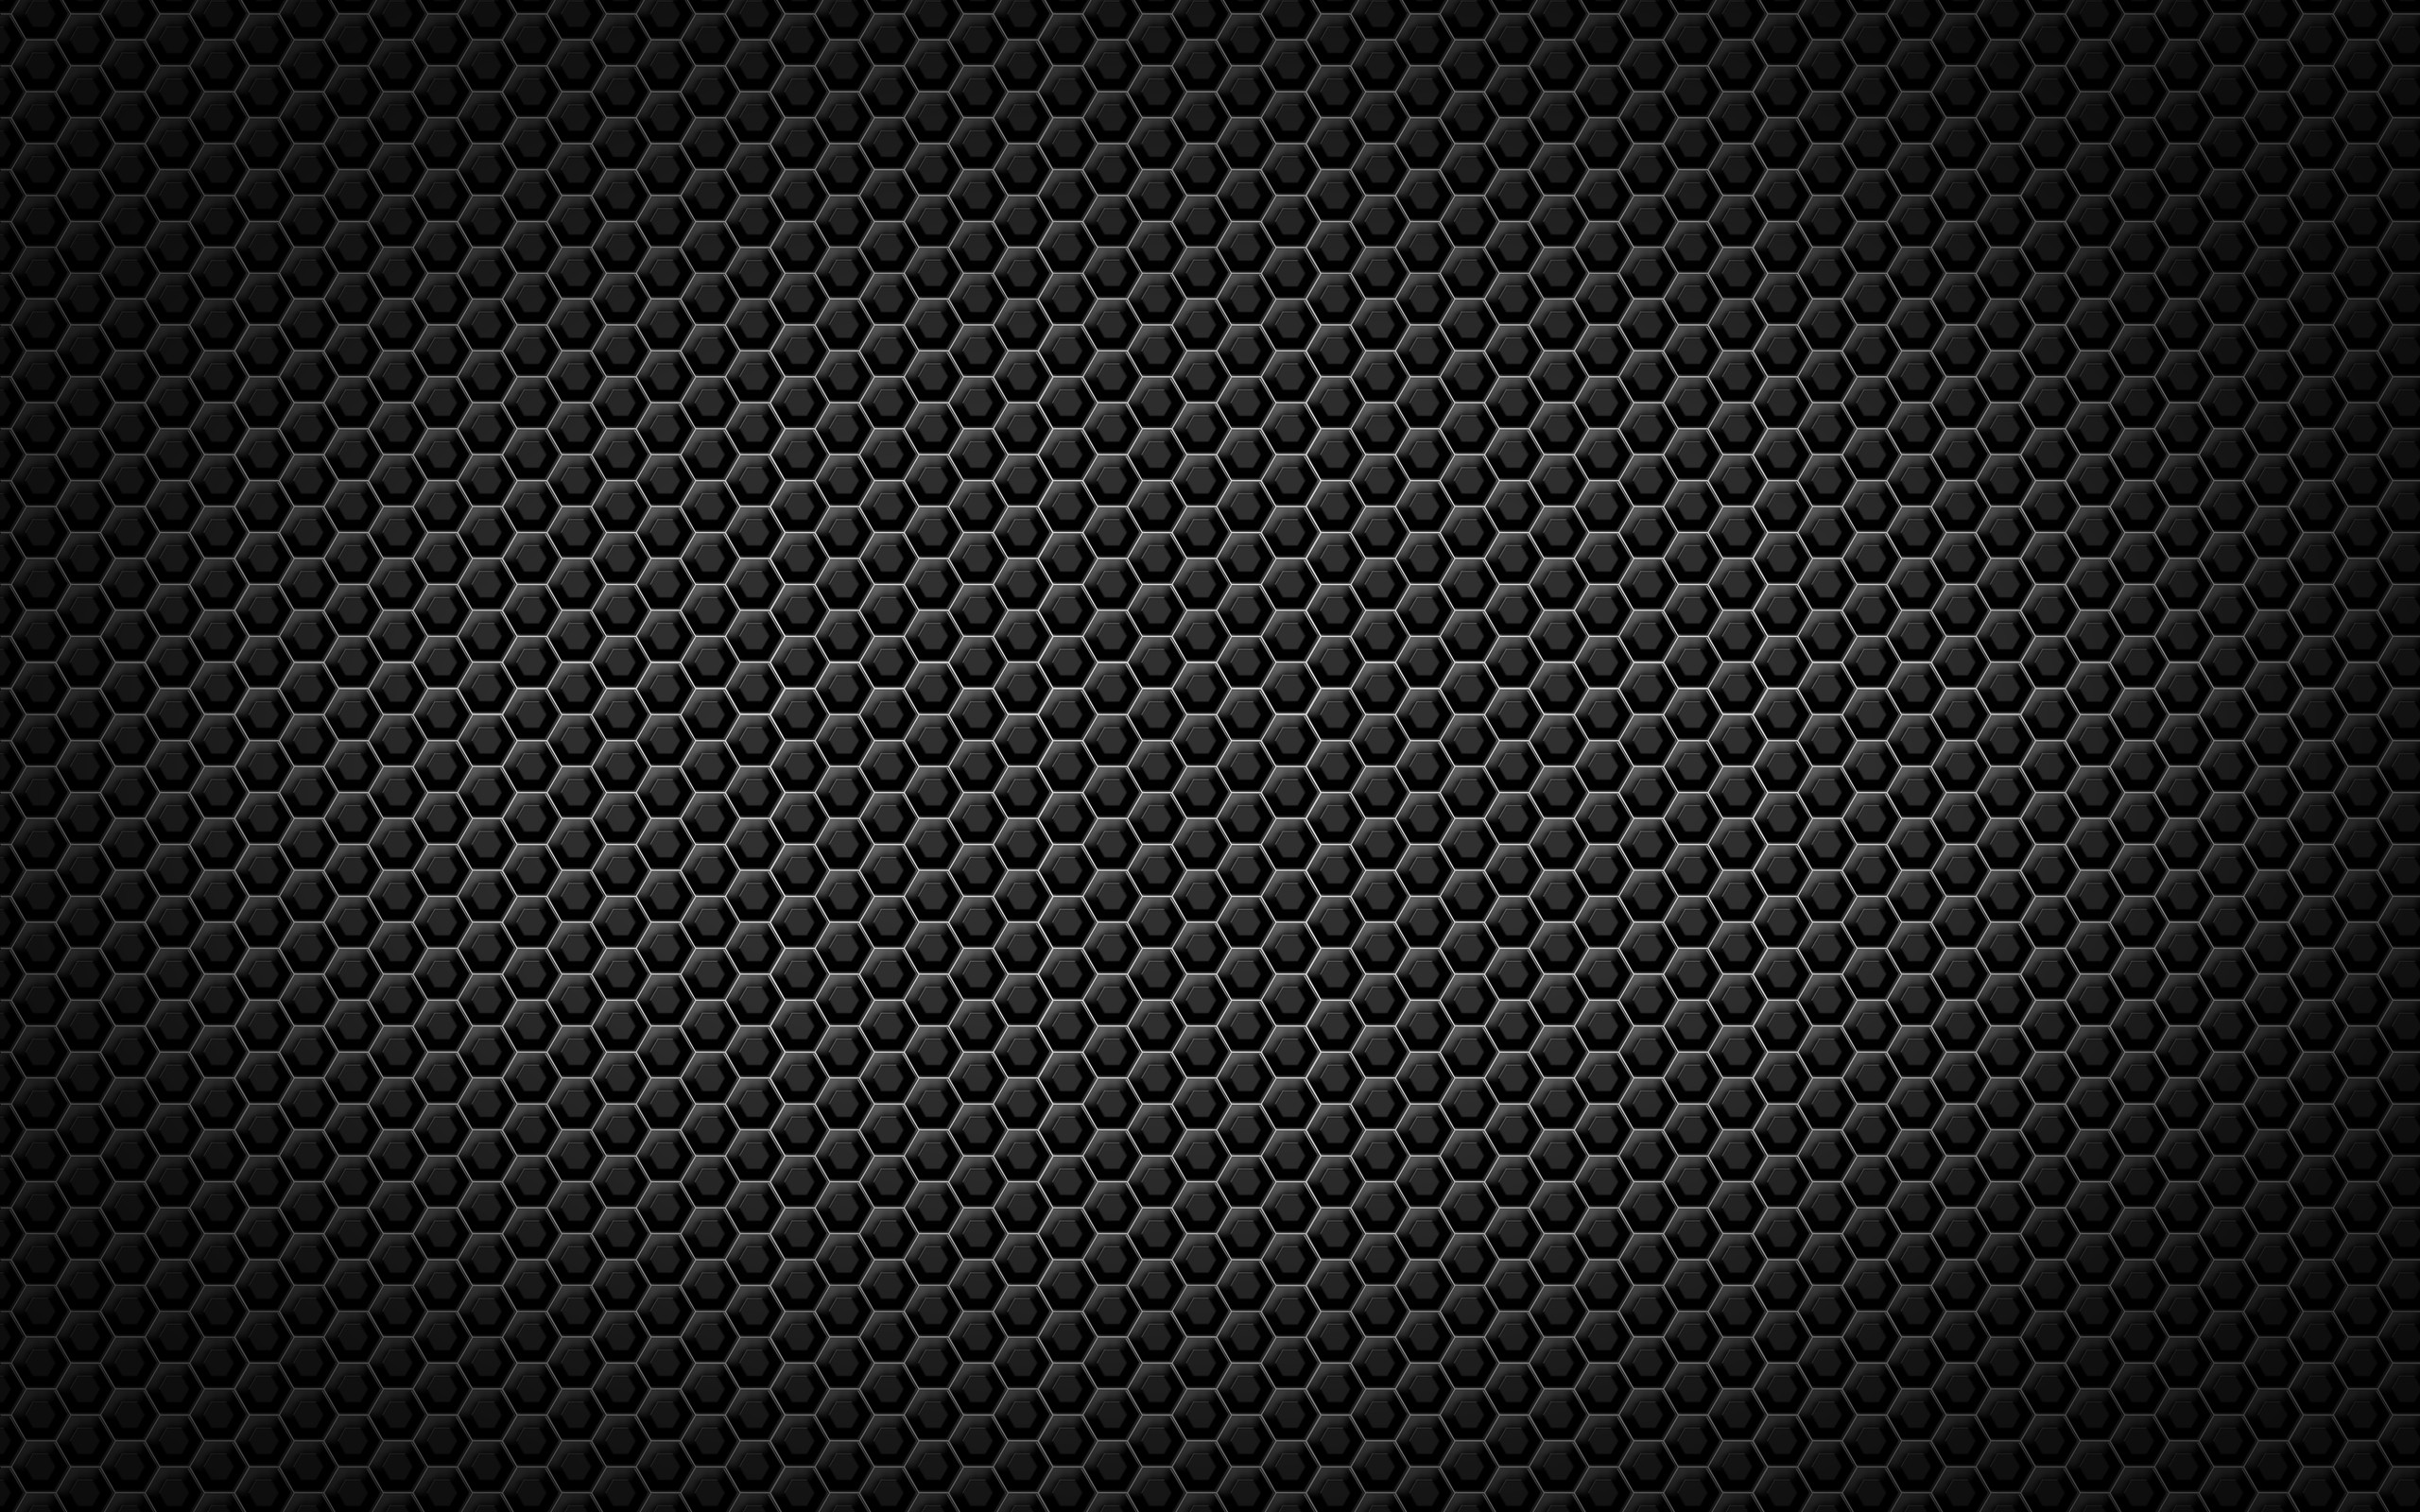 Black background image Download free cool full HD wallpapers